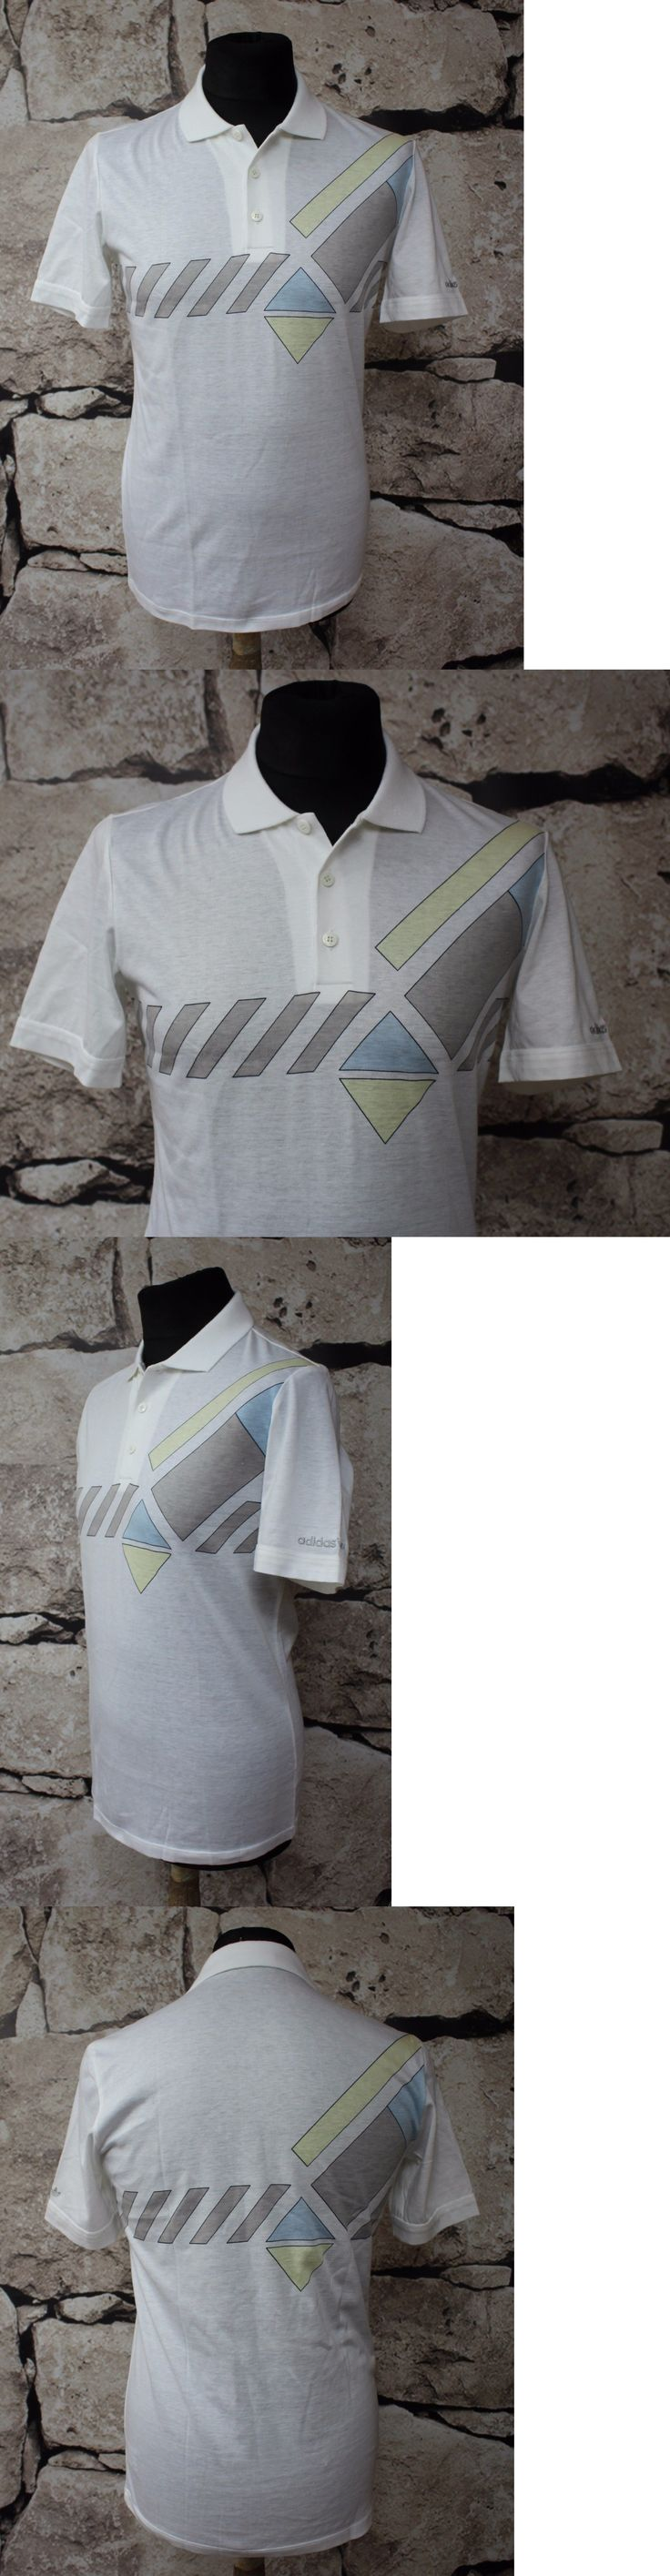 T-Shirts 175781: _ Adidas Ivan Lendl Colection _ Tenis Polo Shirt _ Made In West Germany Size S -> BUY IT NOW ONLY: $40 on eBay!